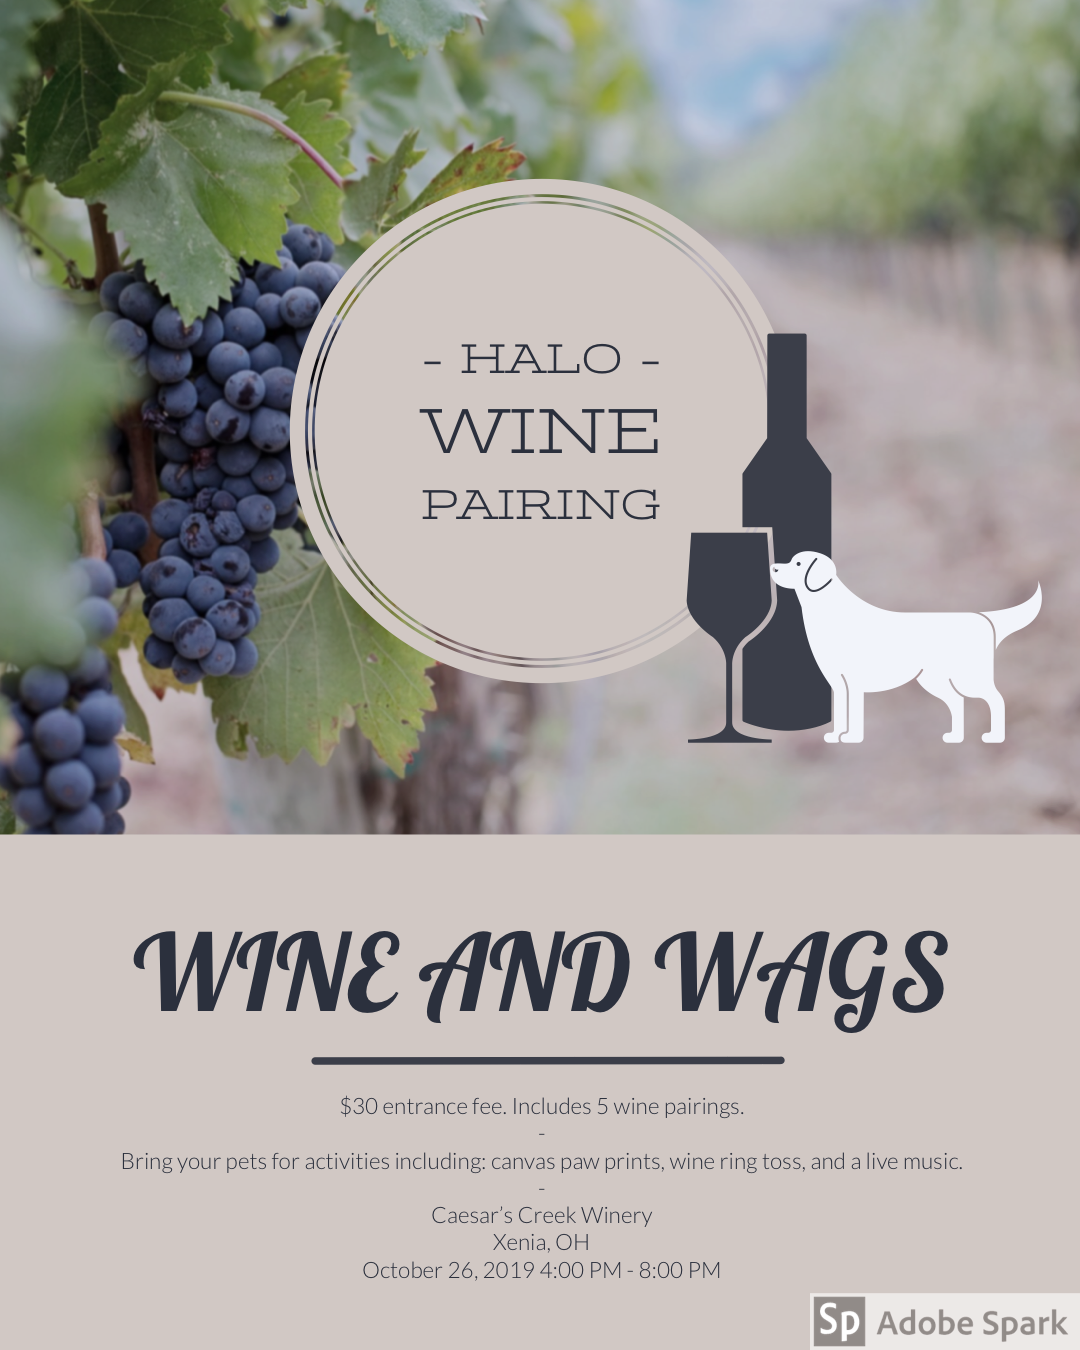 Wine and Wags image